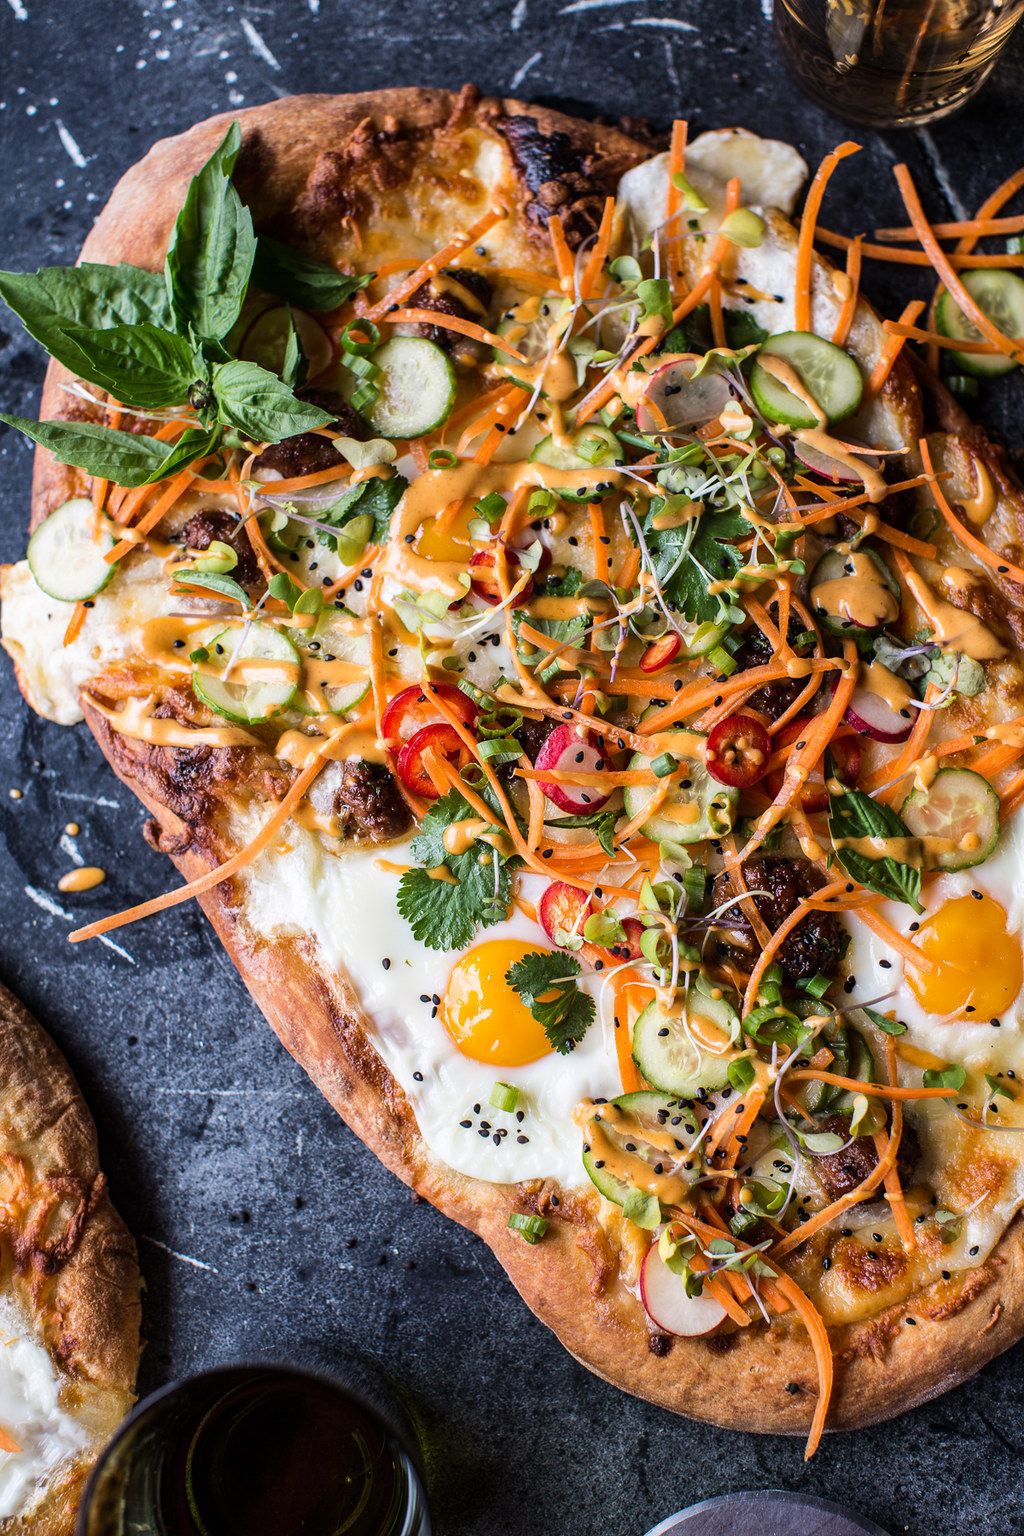 29 Instagram-Worthy Pizza Recipes To Try At Home